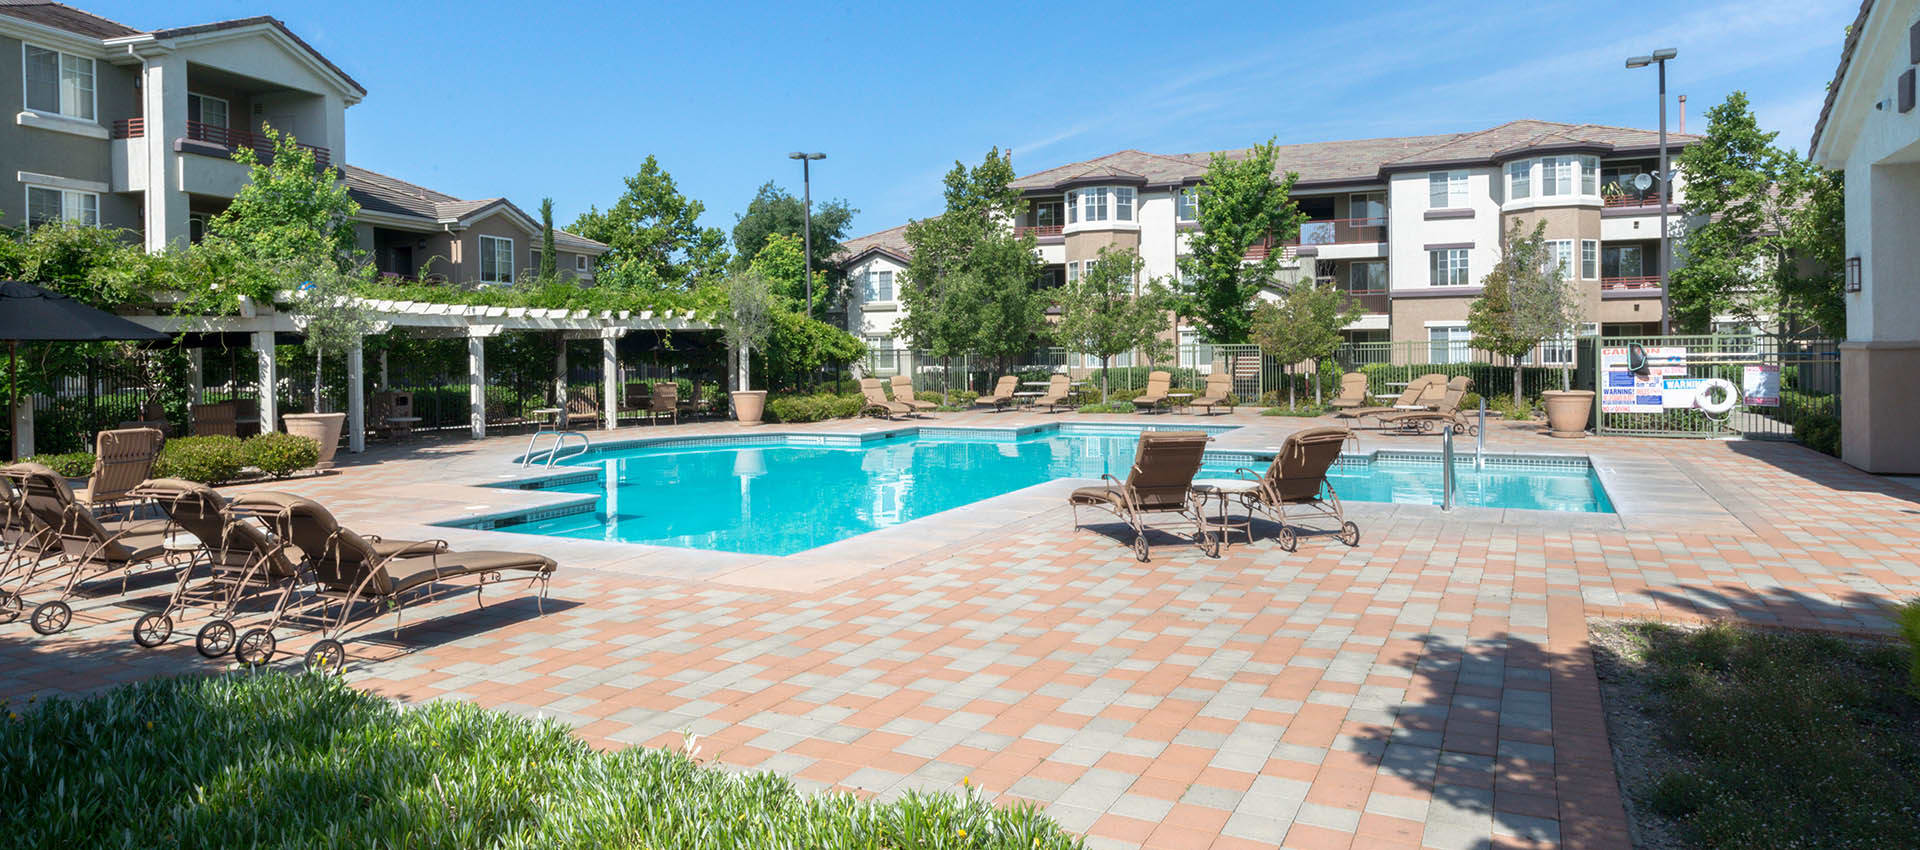 Expansive Pool Deck With Spa at The Artisan Apartment Homes